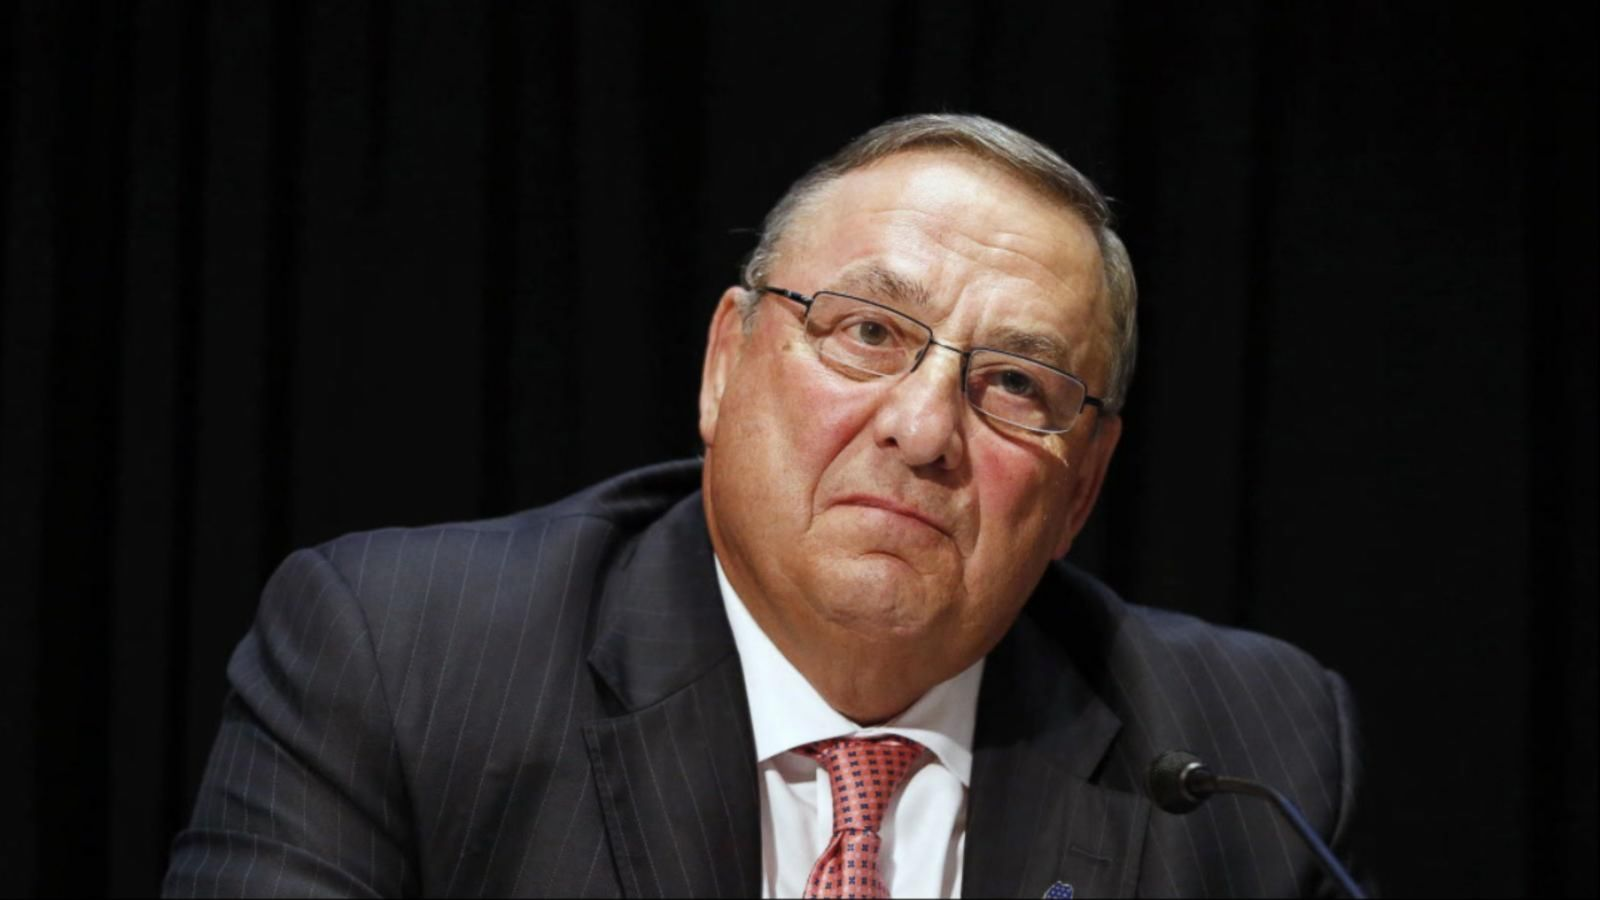 VIDEO: Governor Paul LePage Under Fire for Leaving a Profanity-Laced Voicemail for a State Lawmaker